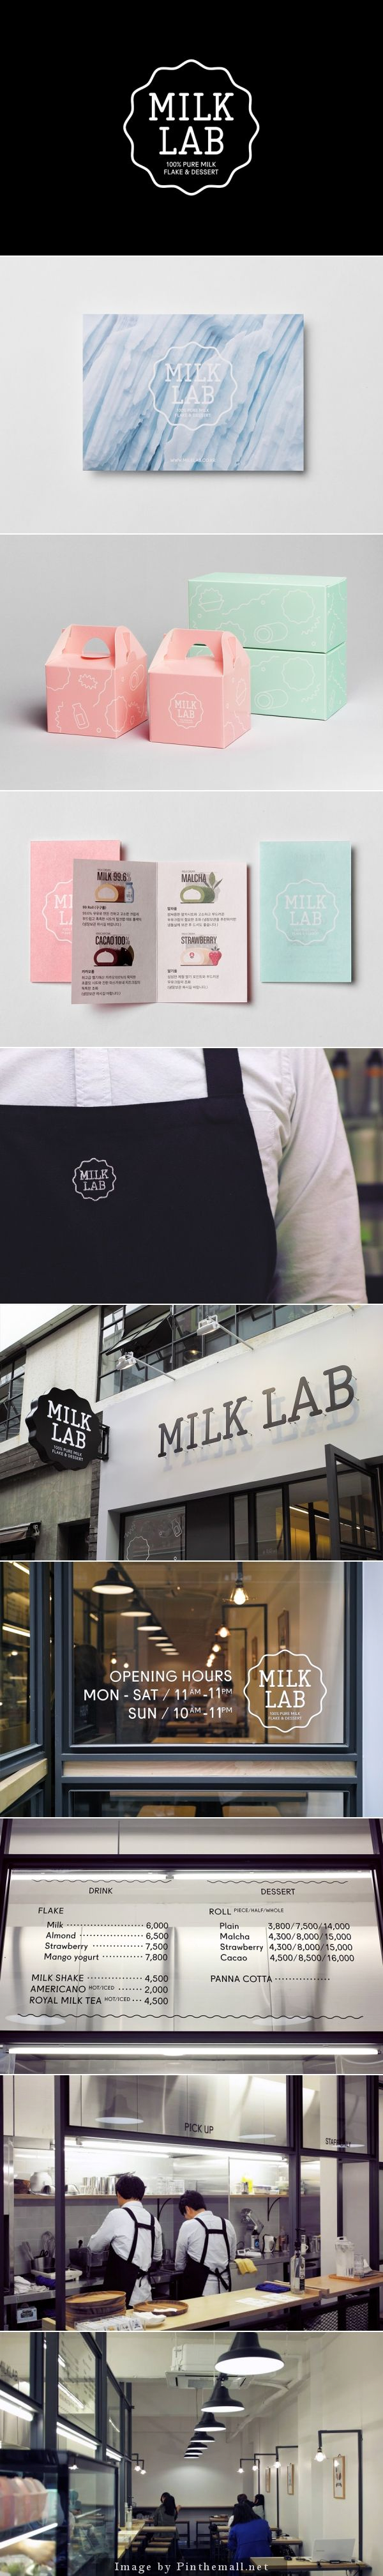 #Logo and Brand #Identity for Milk Lab designed by Studio FNT. Let's get something sweet #packaging PD